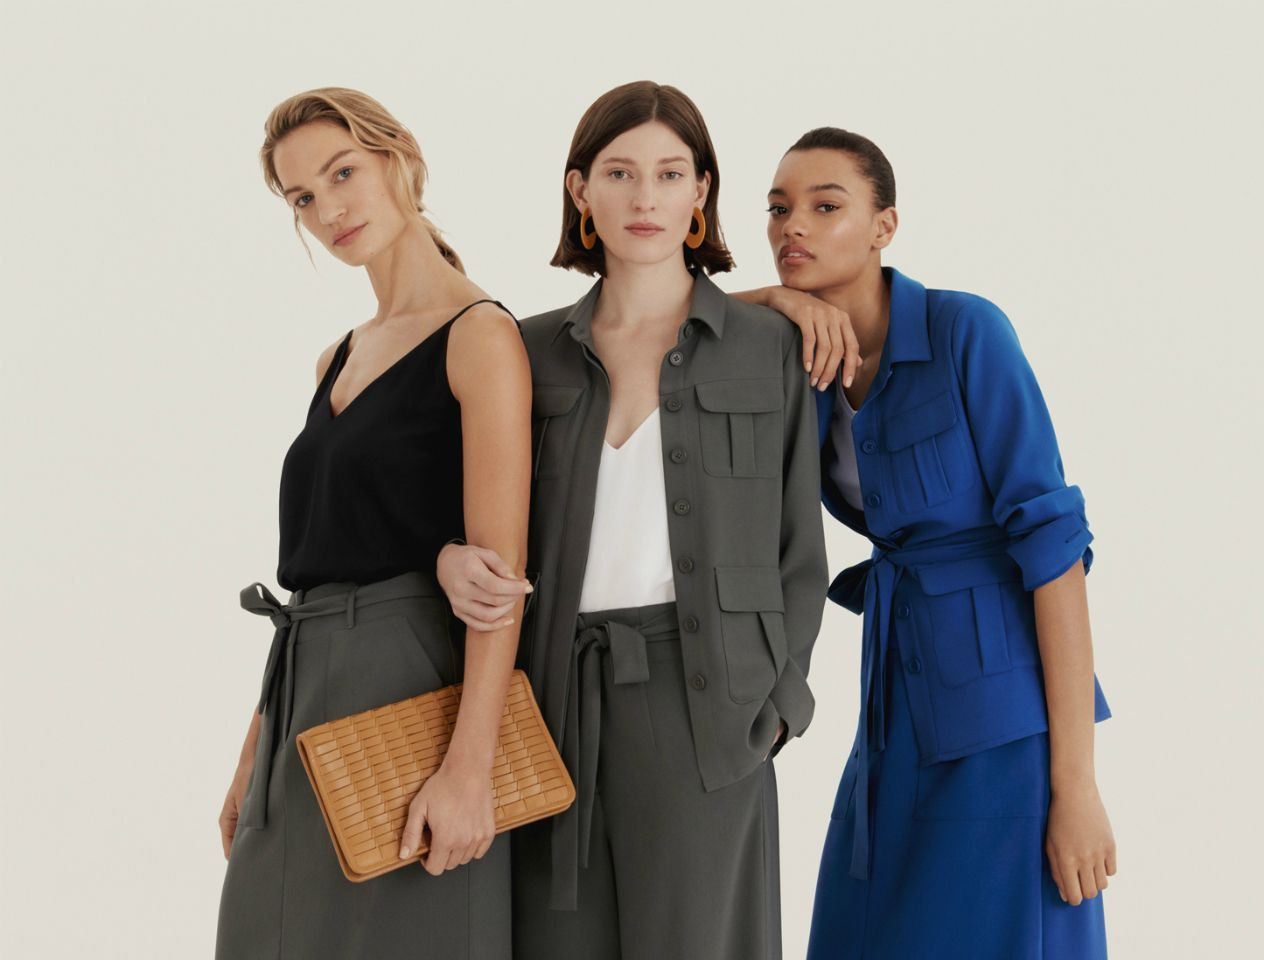 women's workwear ideas from John Lewis & Partners